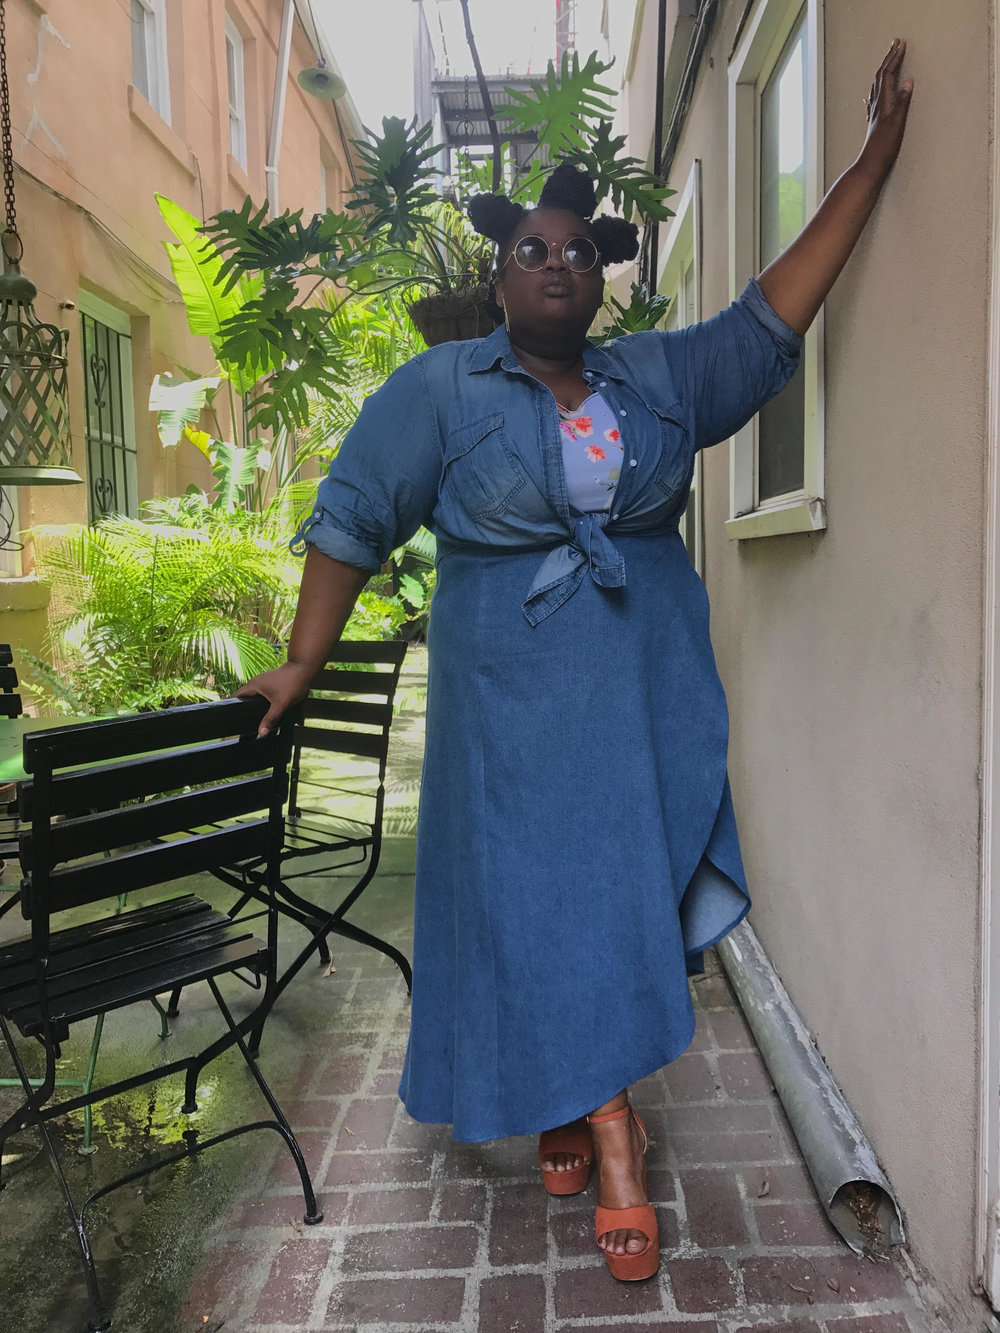 Denim Cha-Floral Crop (under) that I made, Lane Bryant button-up (tied up) & a Denim Wrap Skirt, Gold Rings from H&M, Eyewear stolen from Dennis, Shoes from Torrid Photo by Dennis Robinson II